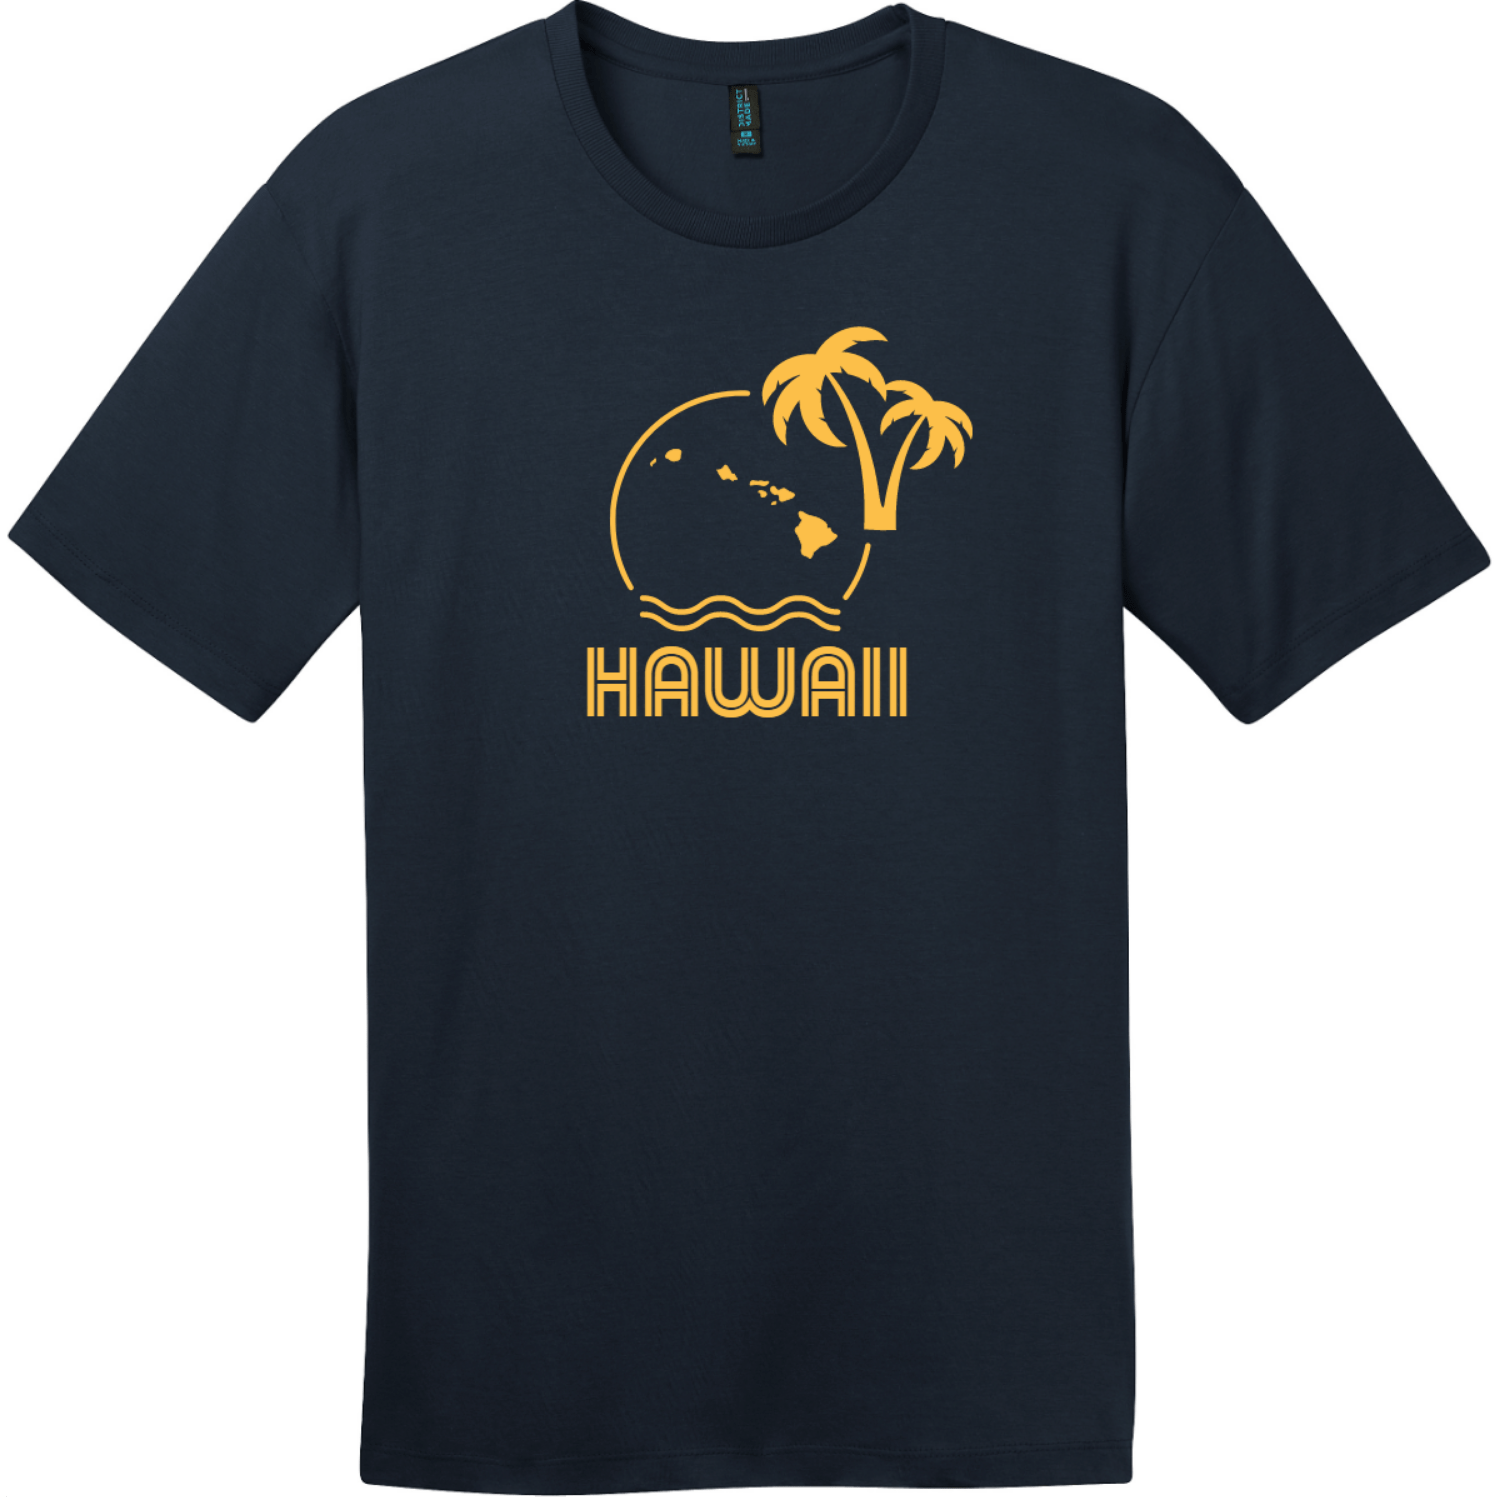 Hawaii Ocean Sun Palm Tree T-Shirt New Navy District Perfect Weight Tee DT104